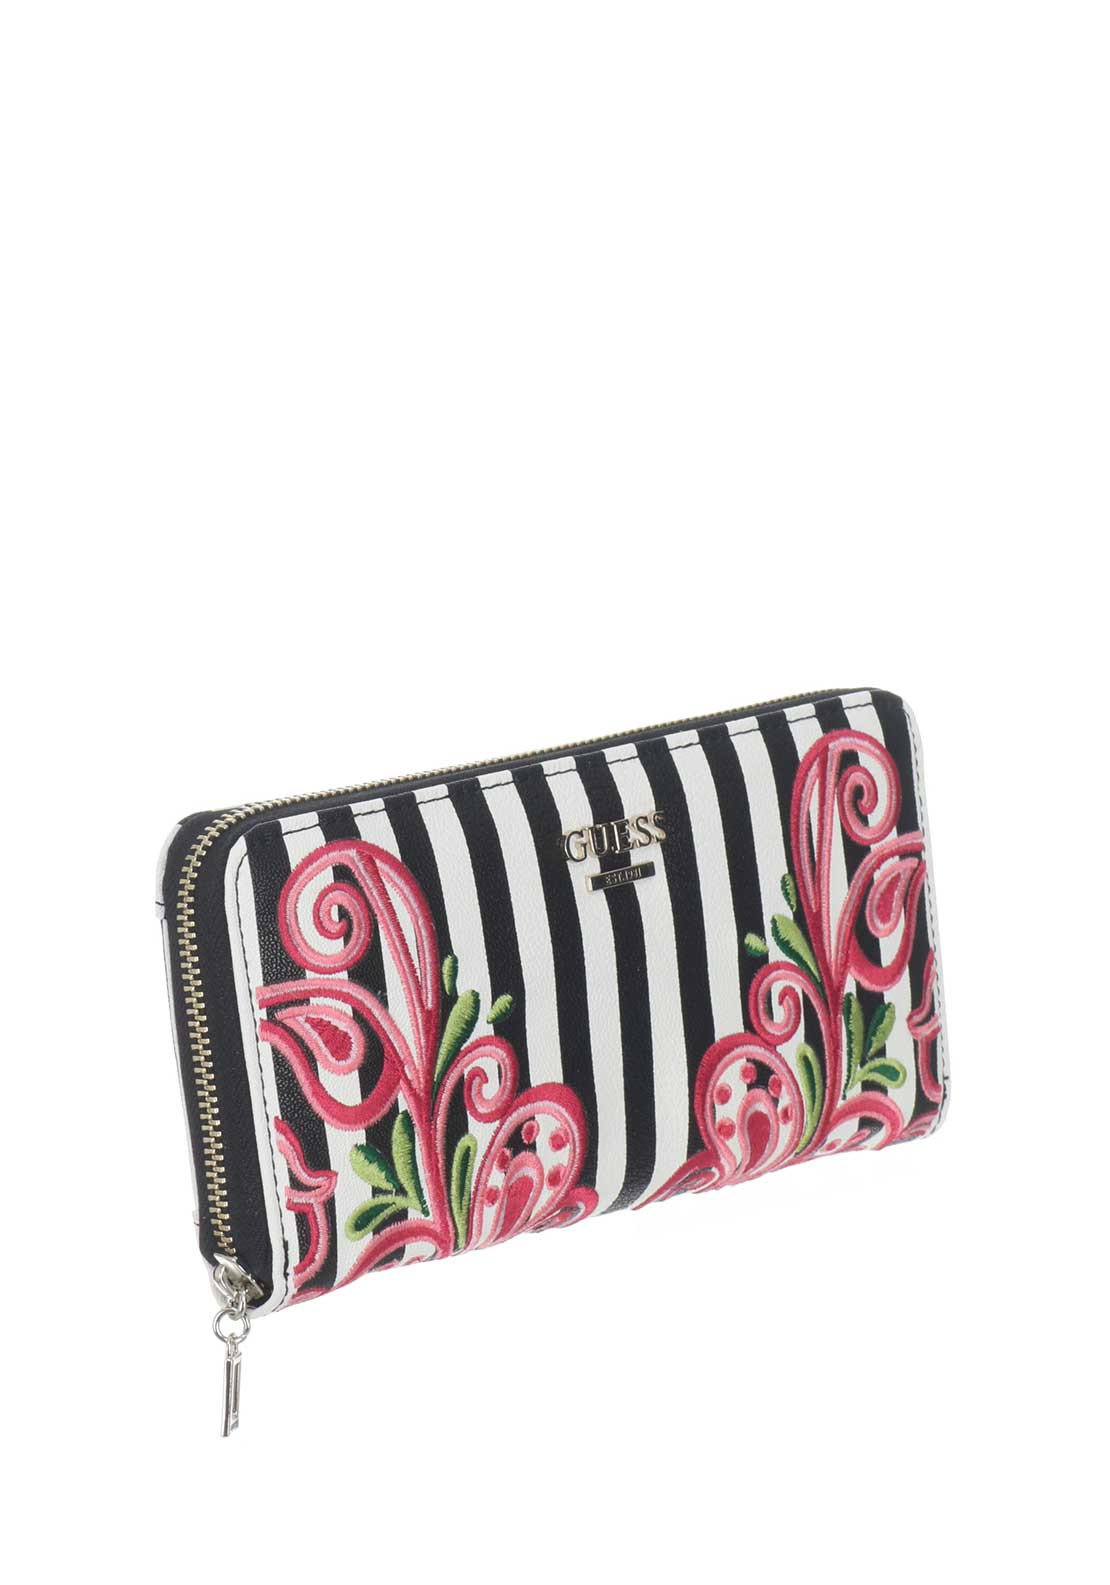 1ee1a22a61 Guess Arianna Large Wallet